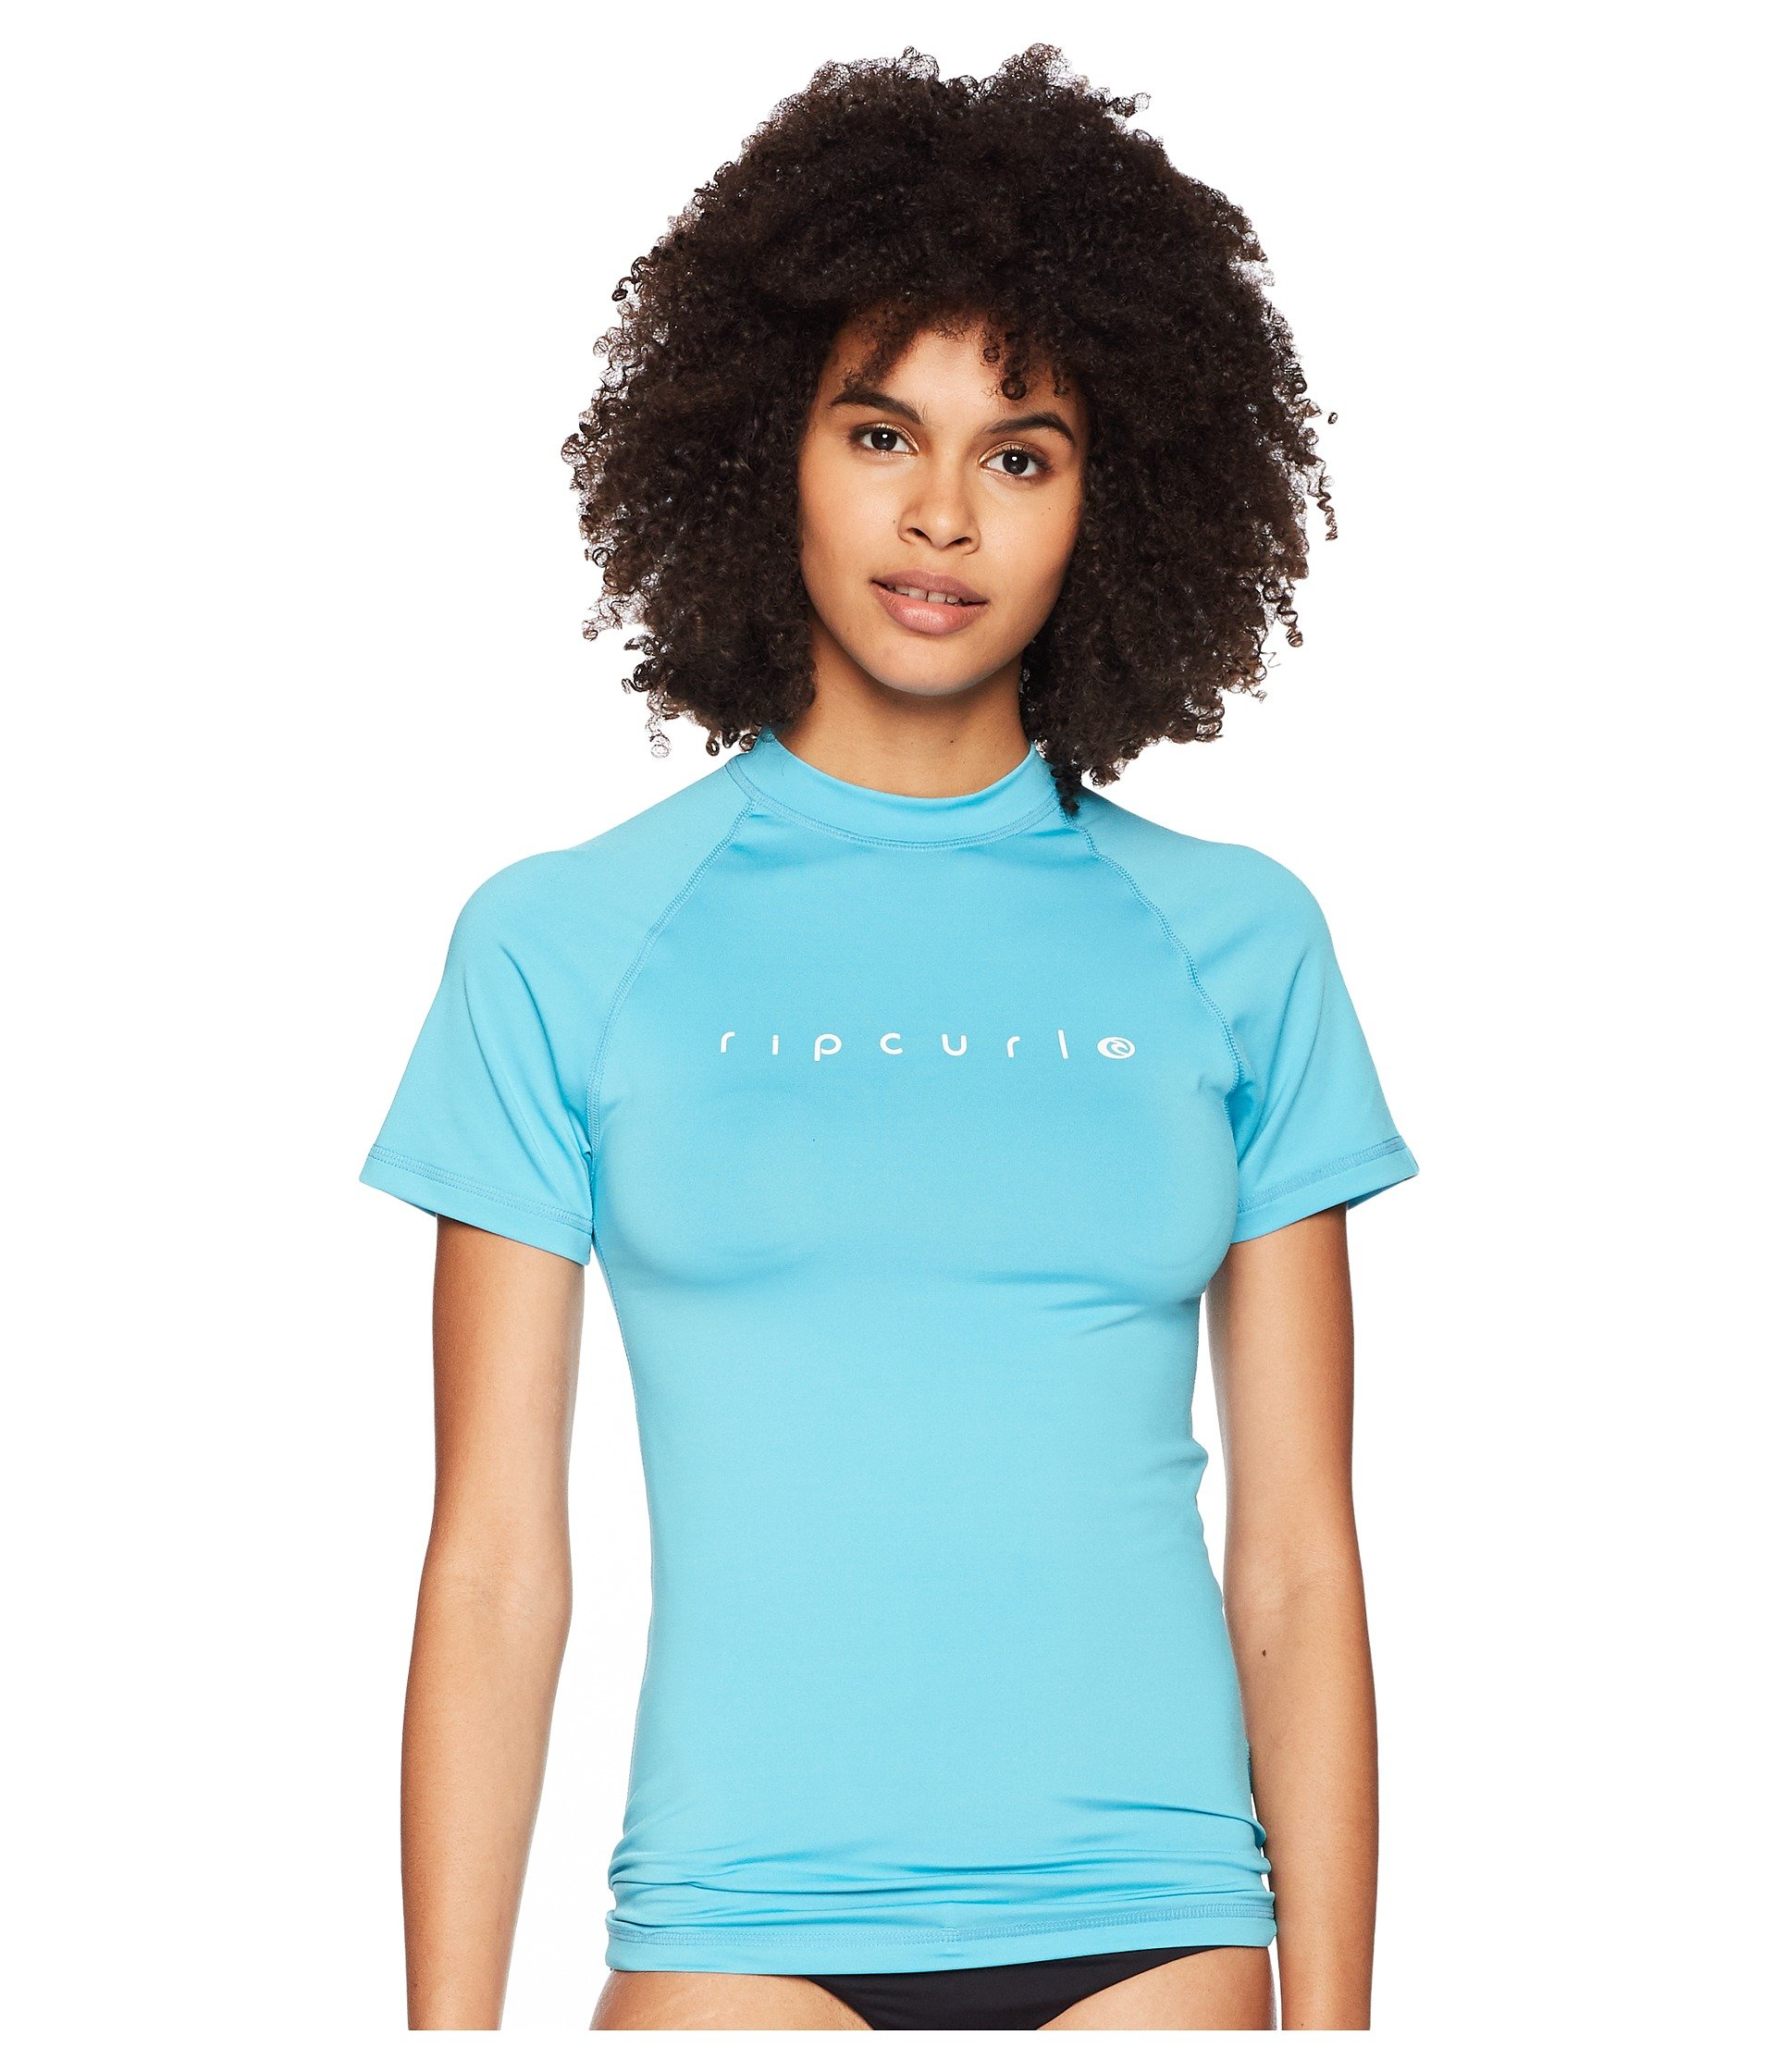 Rip Curl Sunny Rays Relaxed Short Sleeve Rash Guard, Light Blue, XS by Rip Curl